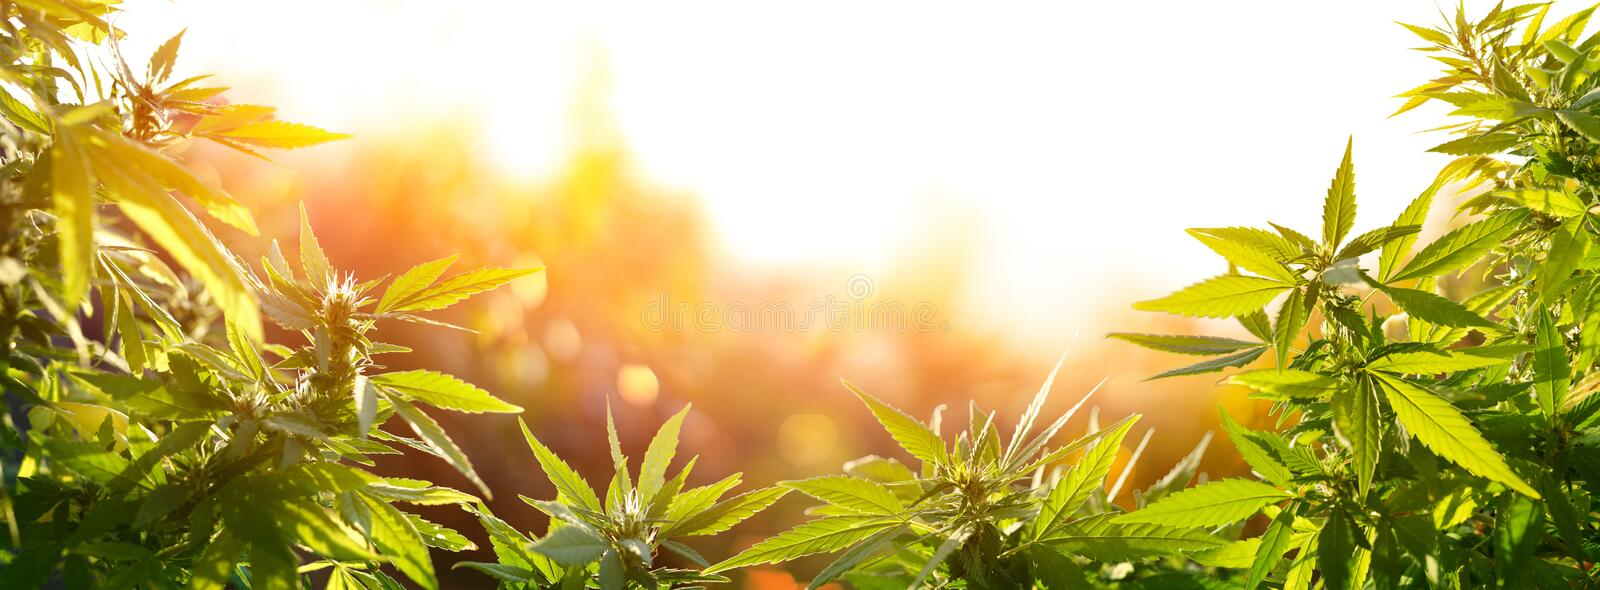 Cannabis With Flowers At Sunset - Sativa Herb royalty free stock photo